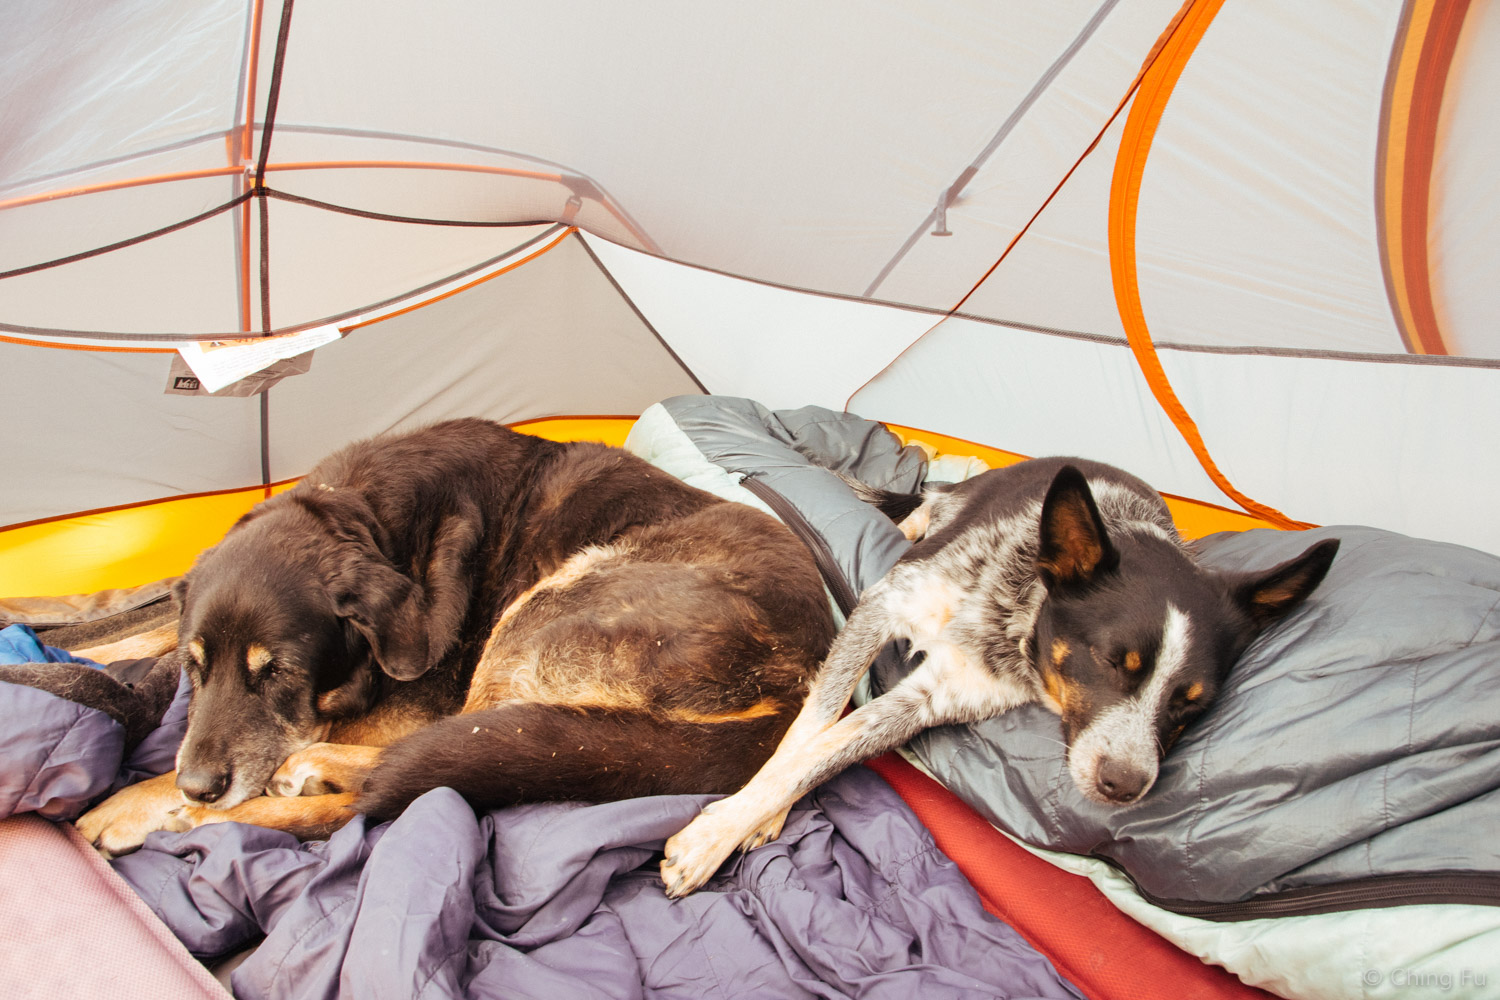 Tybee and Tyki in a tent.